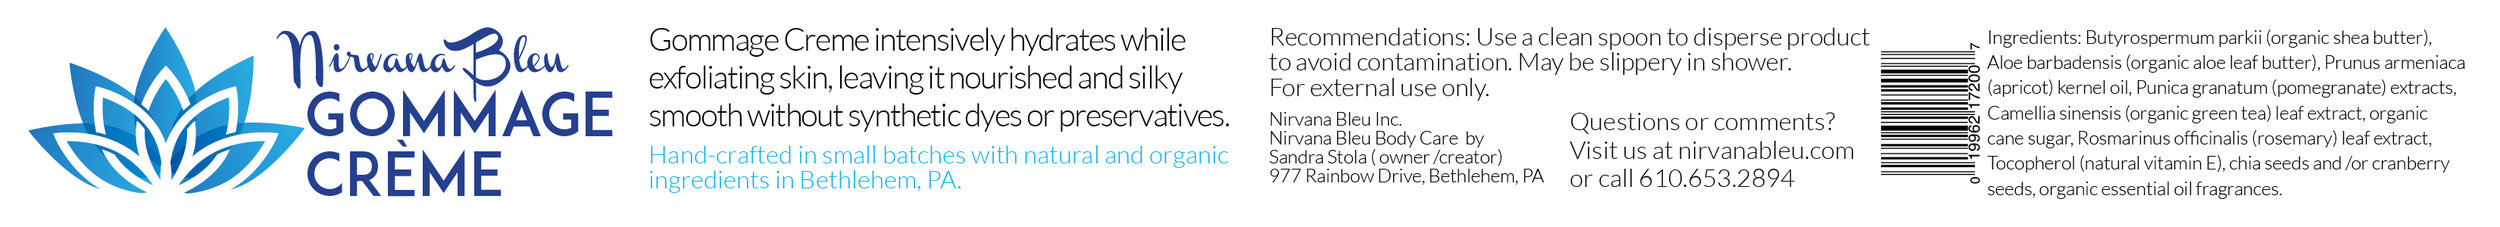 Nirvana Bleu Gommage Créme 11x1 inch side label.